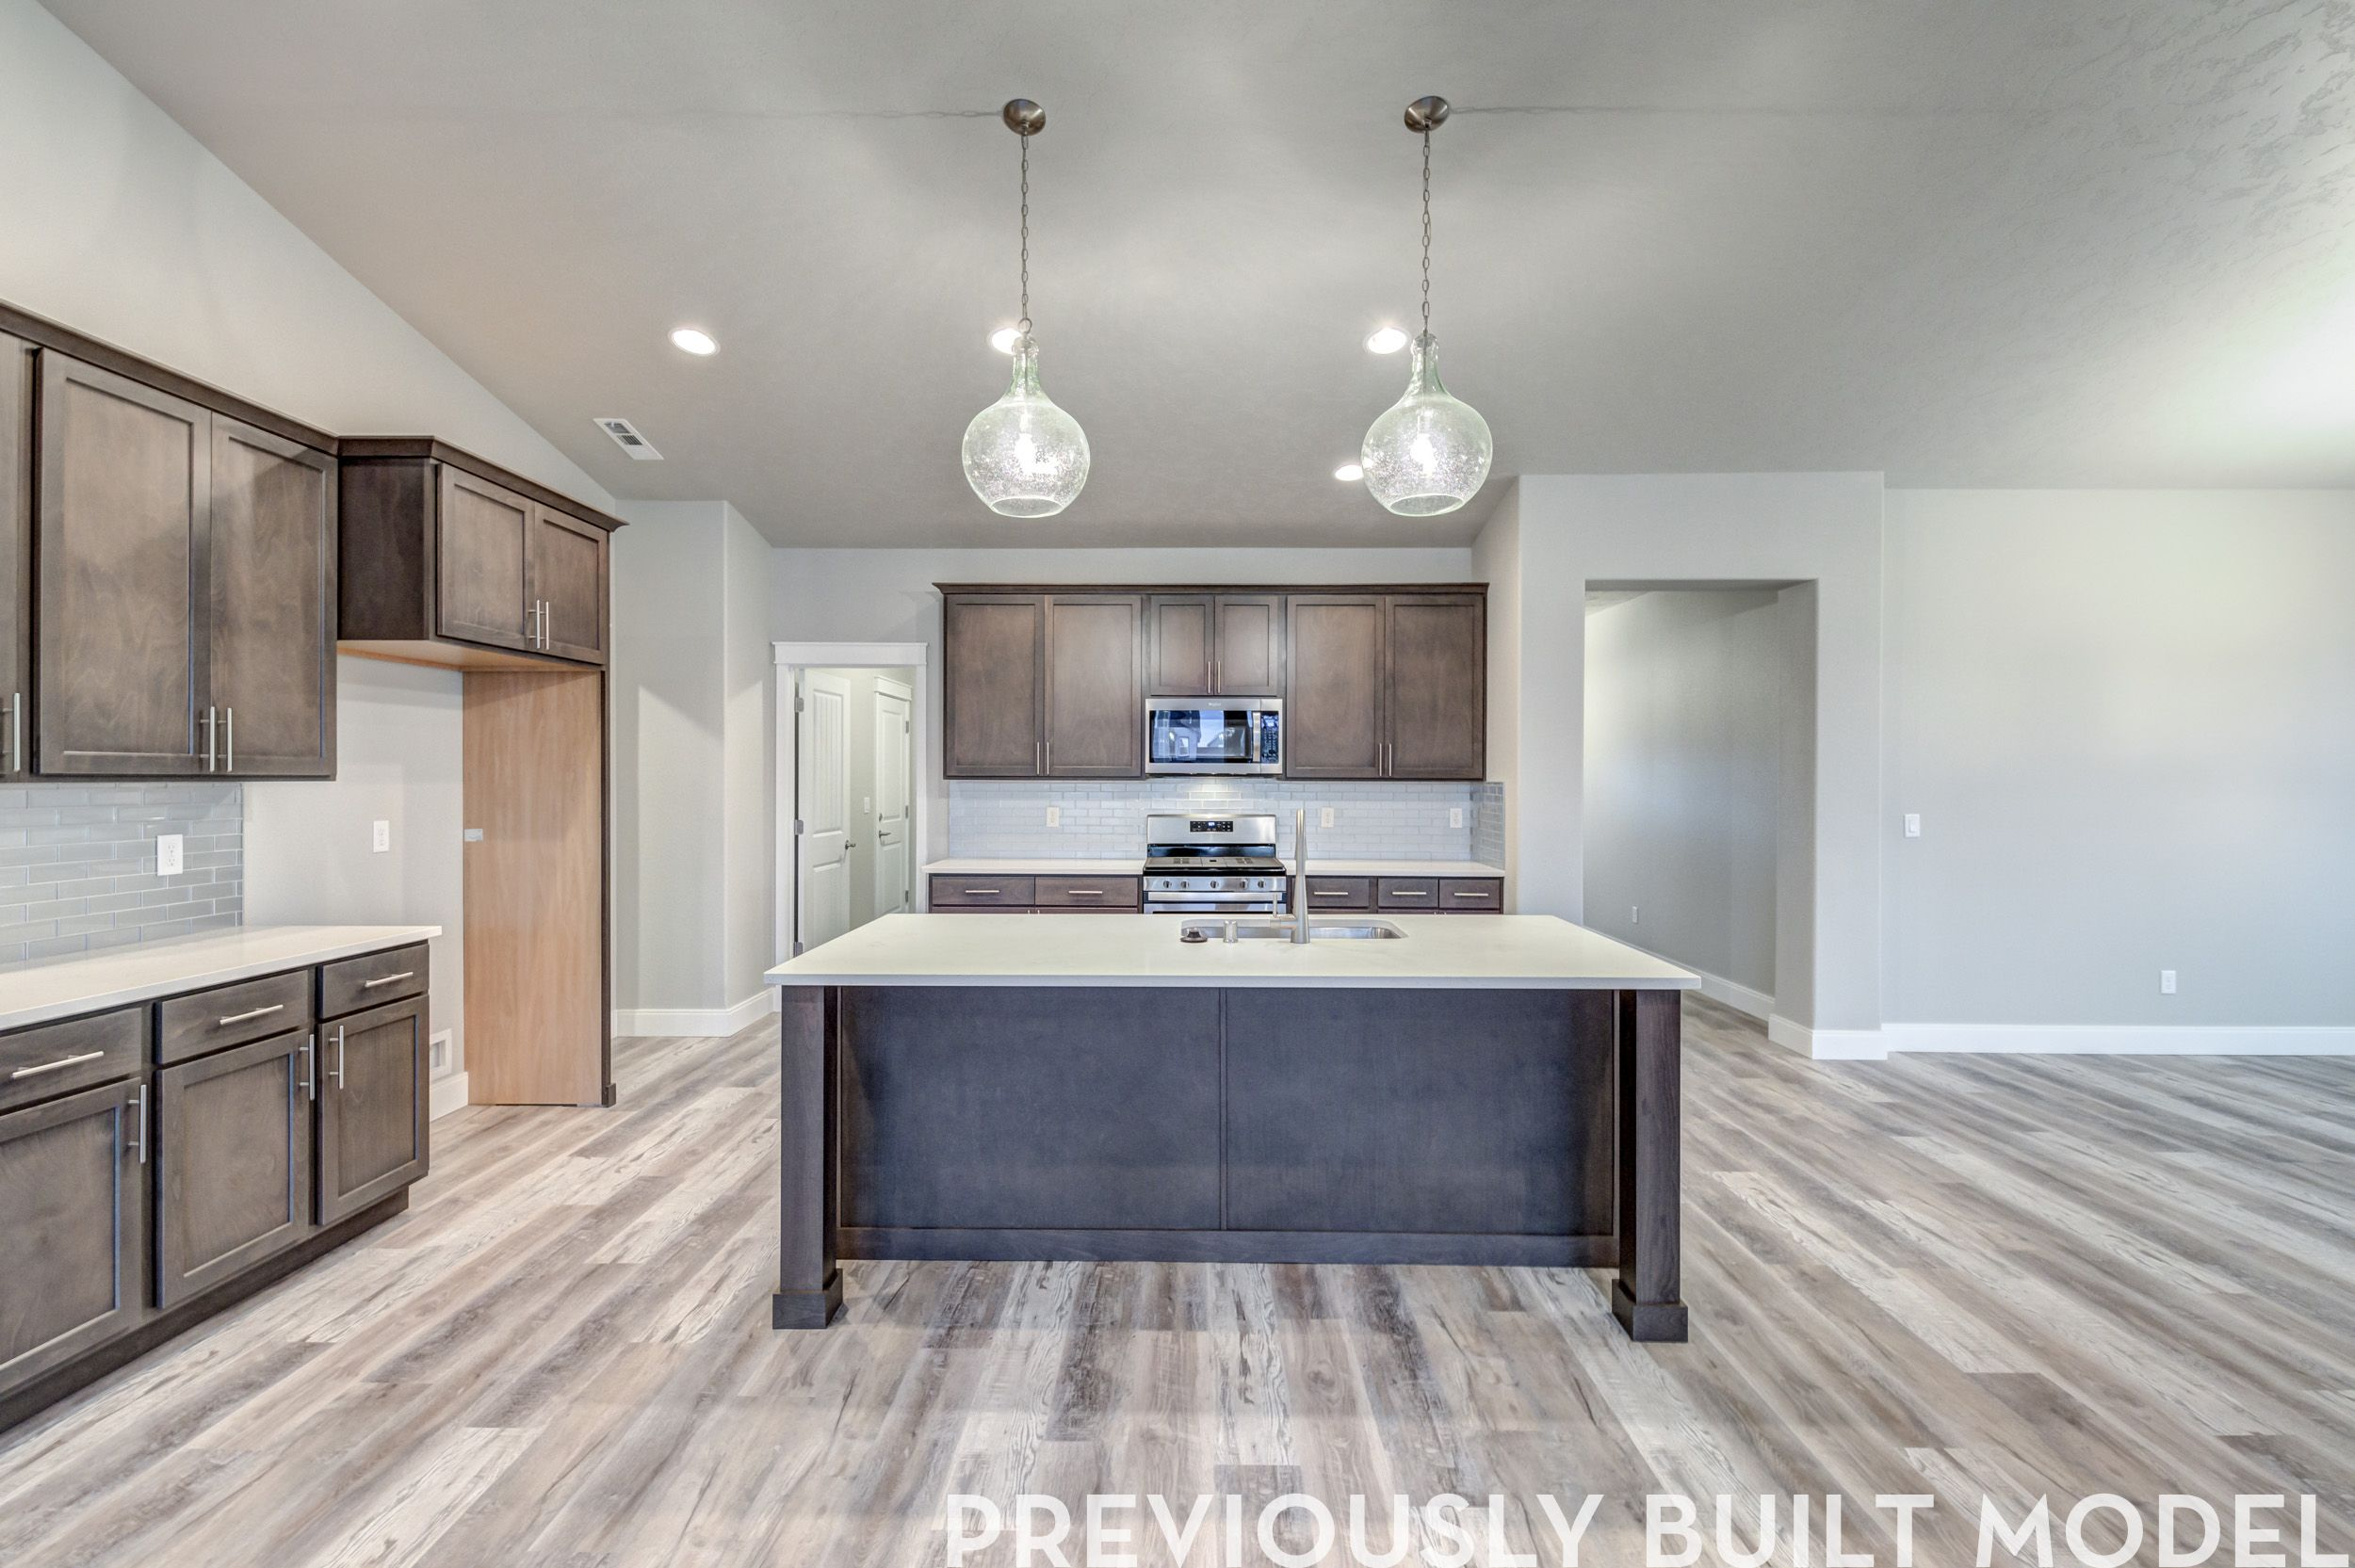 Kitchen featured in The Tully By RYN Built Homes in Richland, WA